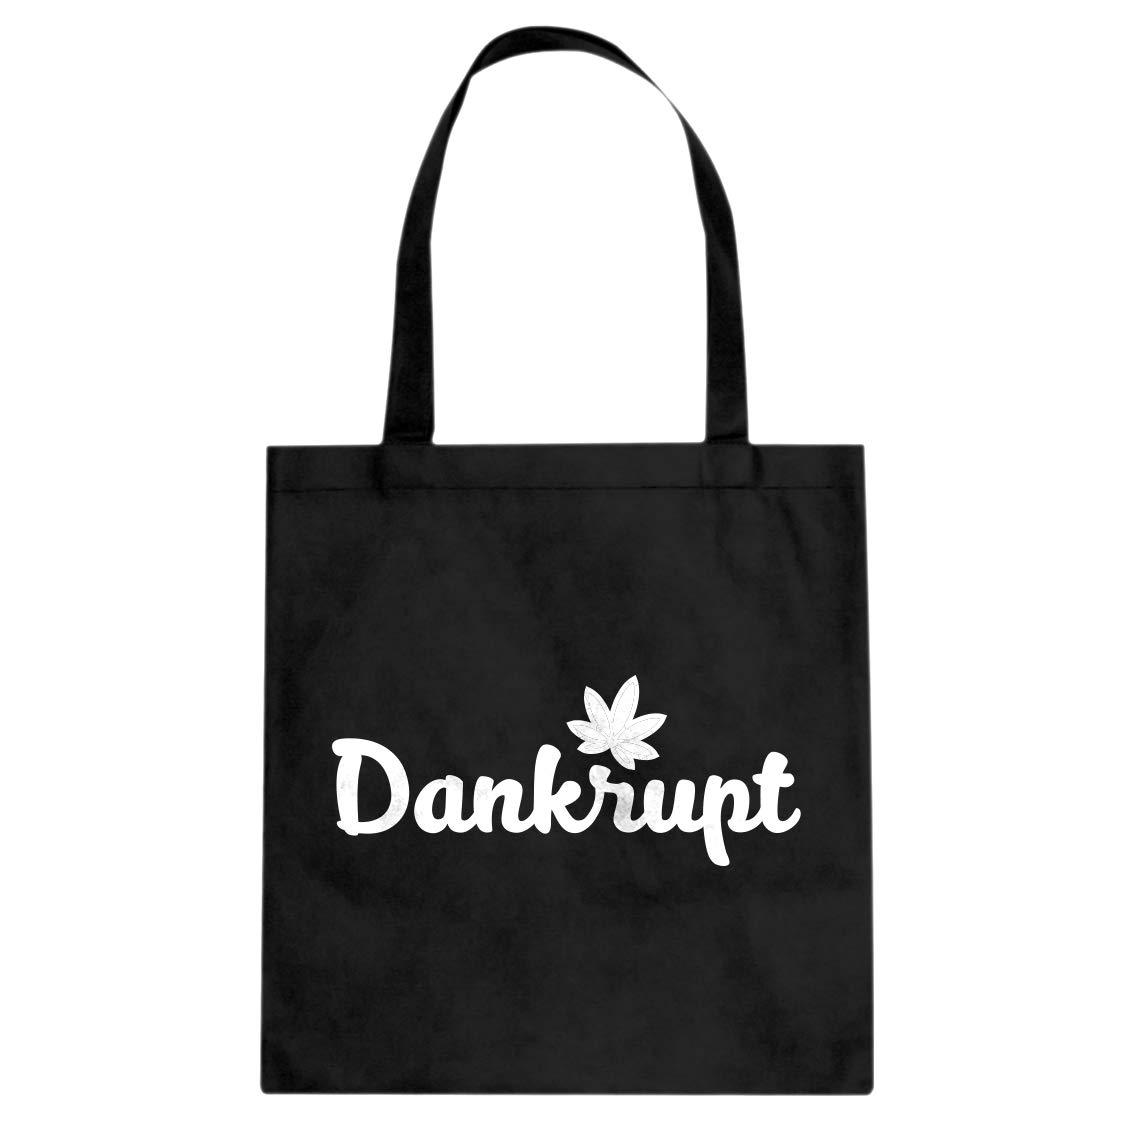 Indica Plateau Dankrupt Cotton Canvas Tote Bag